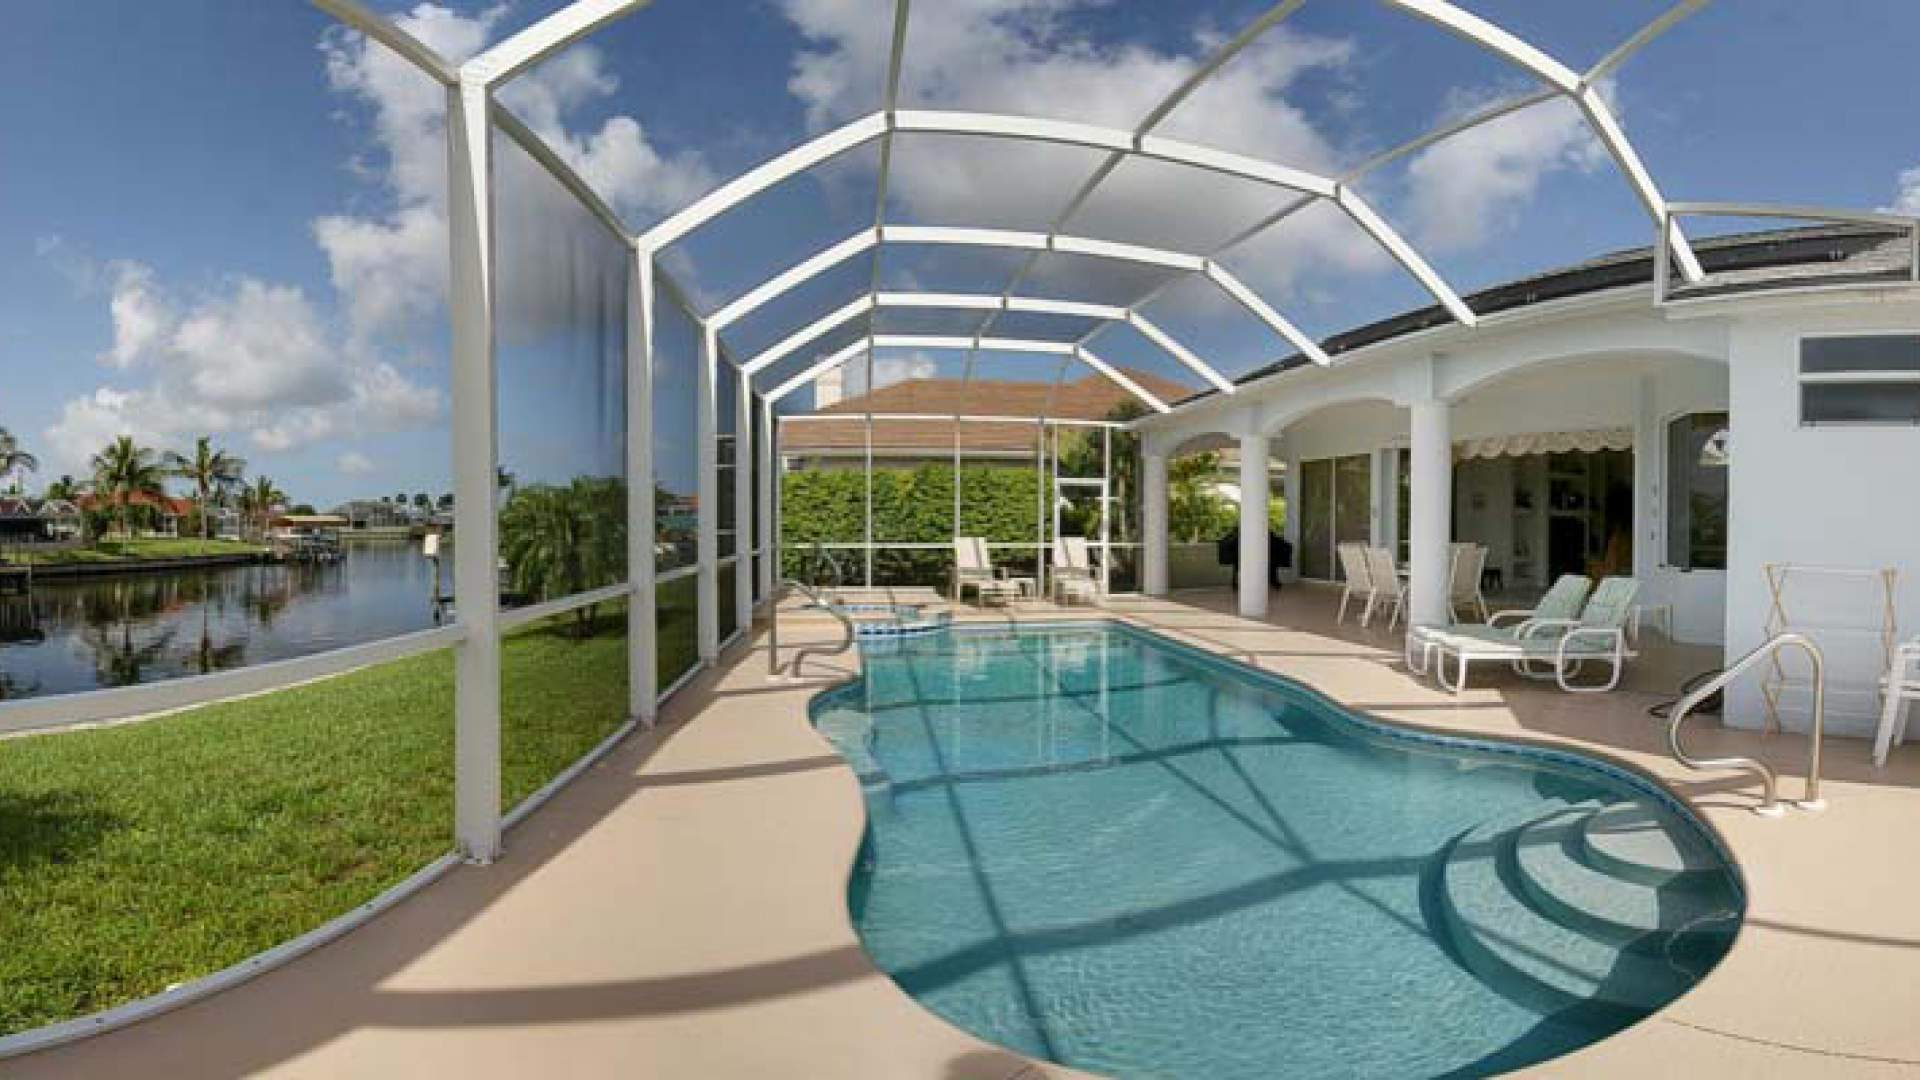 Solarheizung Pool Set Vacation Rentals With Pool In Cape Coral Dream Vacation